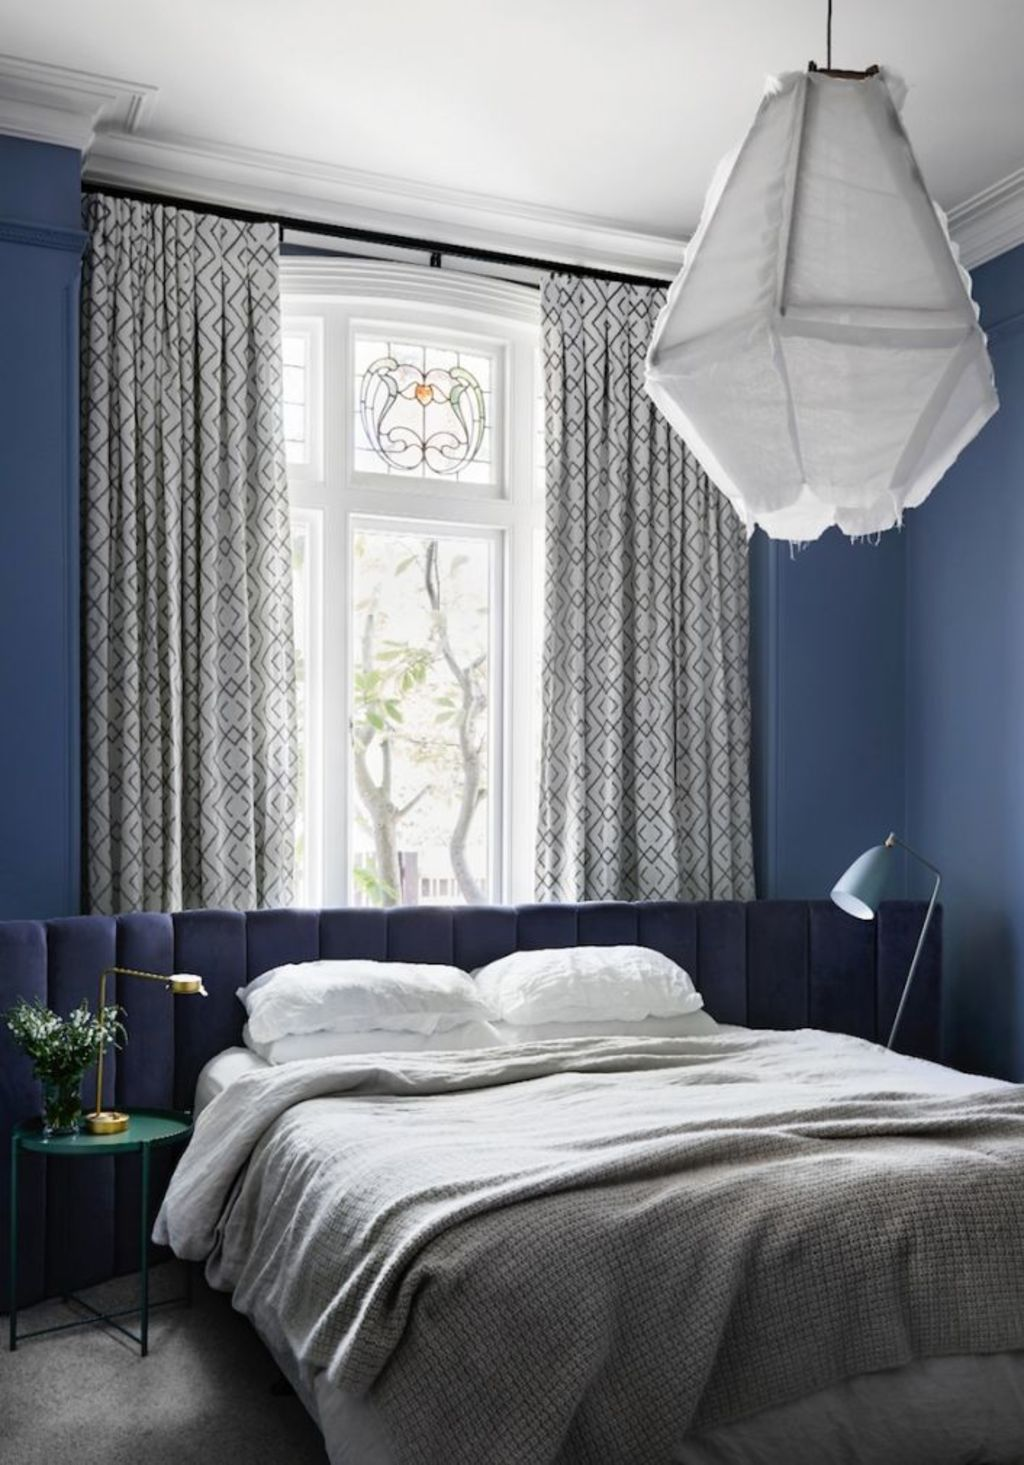 Stuck for inspiration? One item can inspire the look of an entire room. Bedroom by Sisalla Interior Design. Photo: Tess Kelly